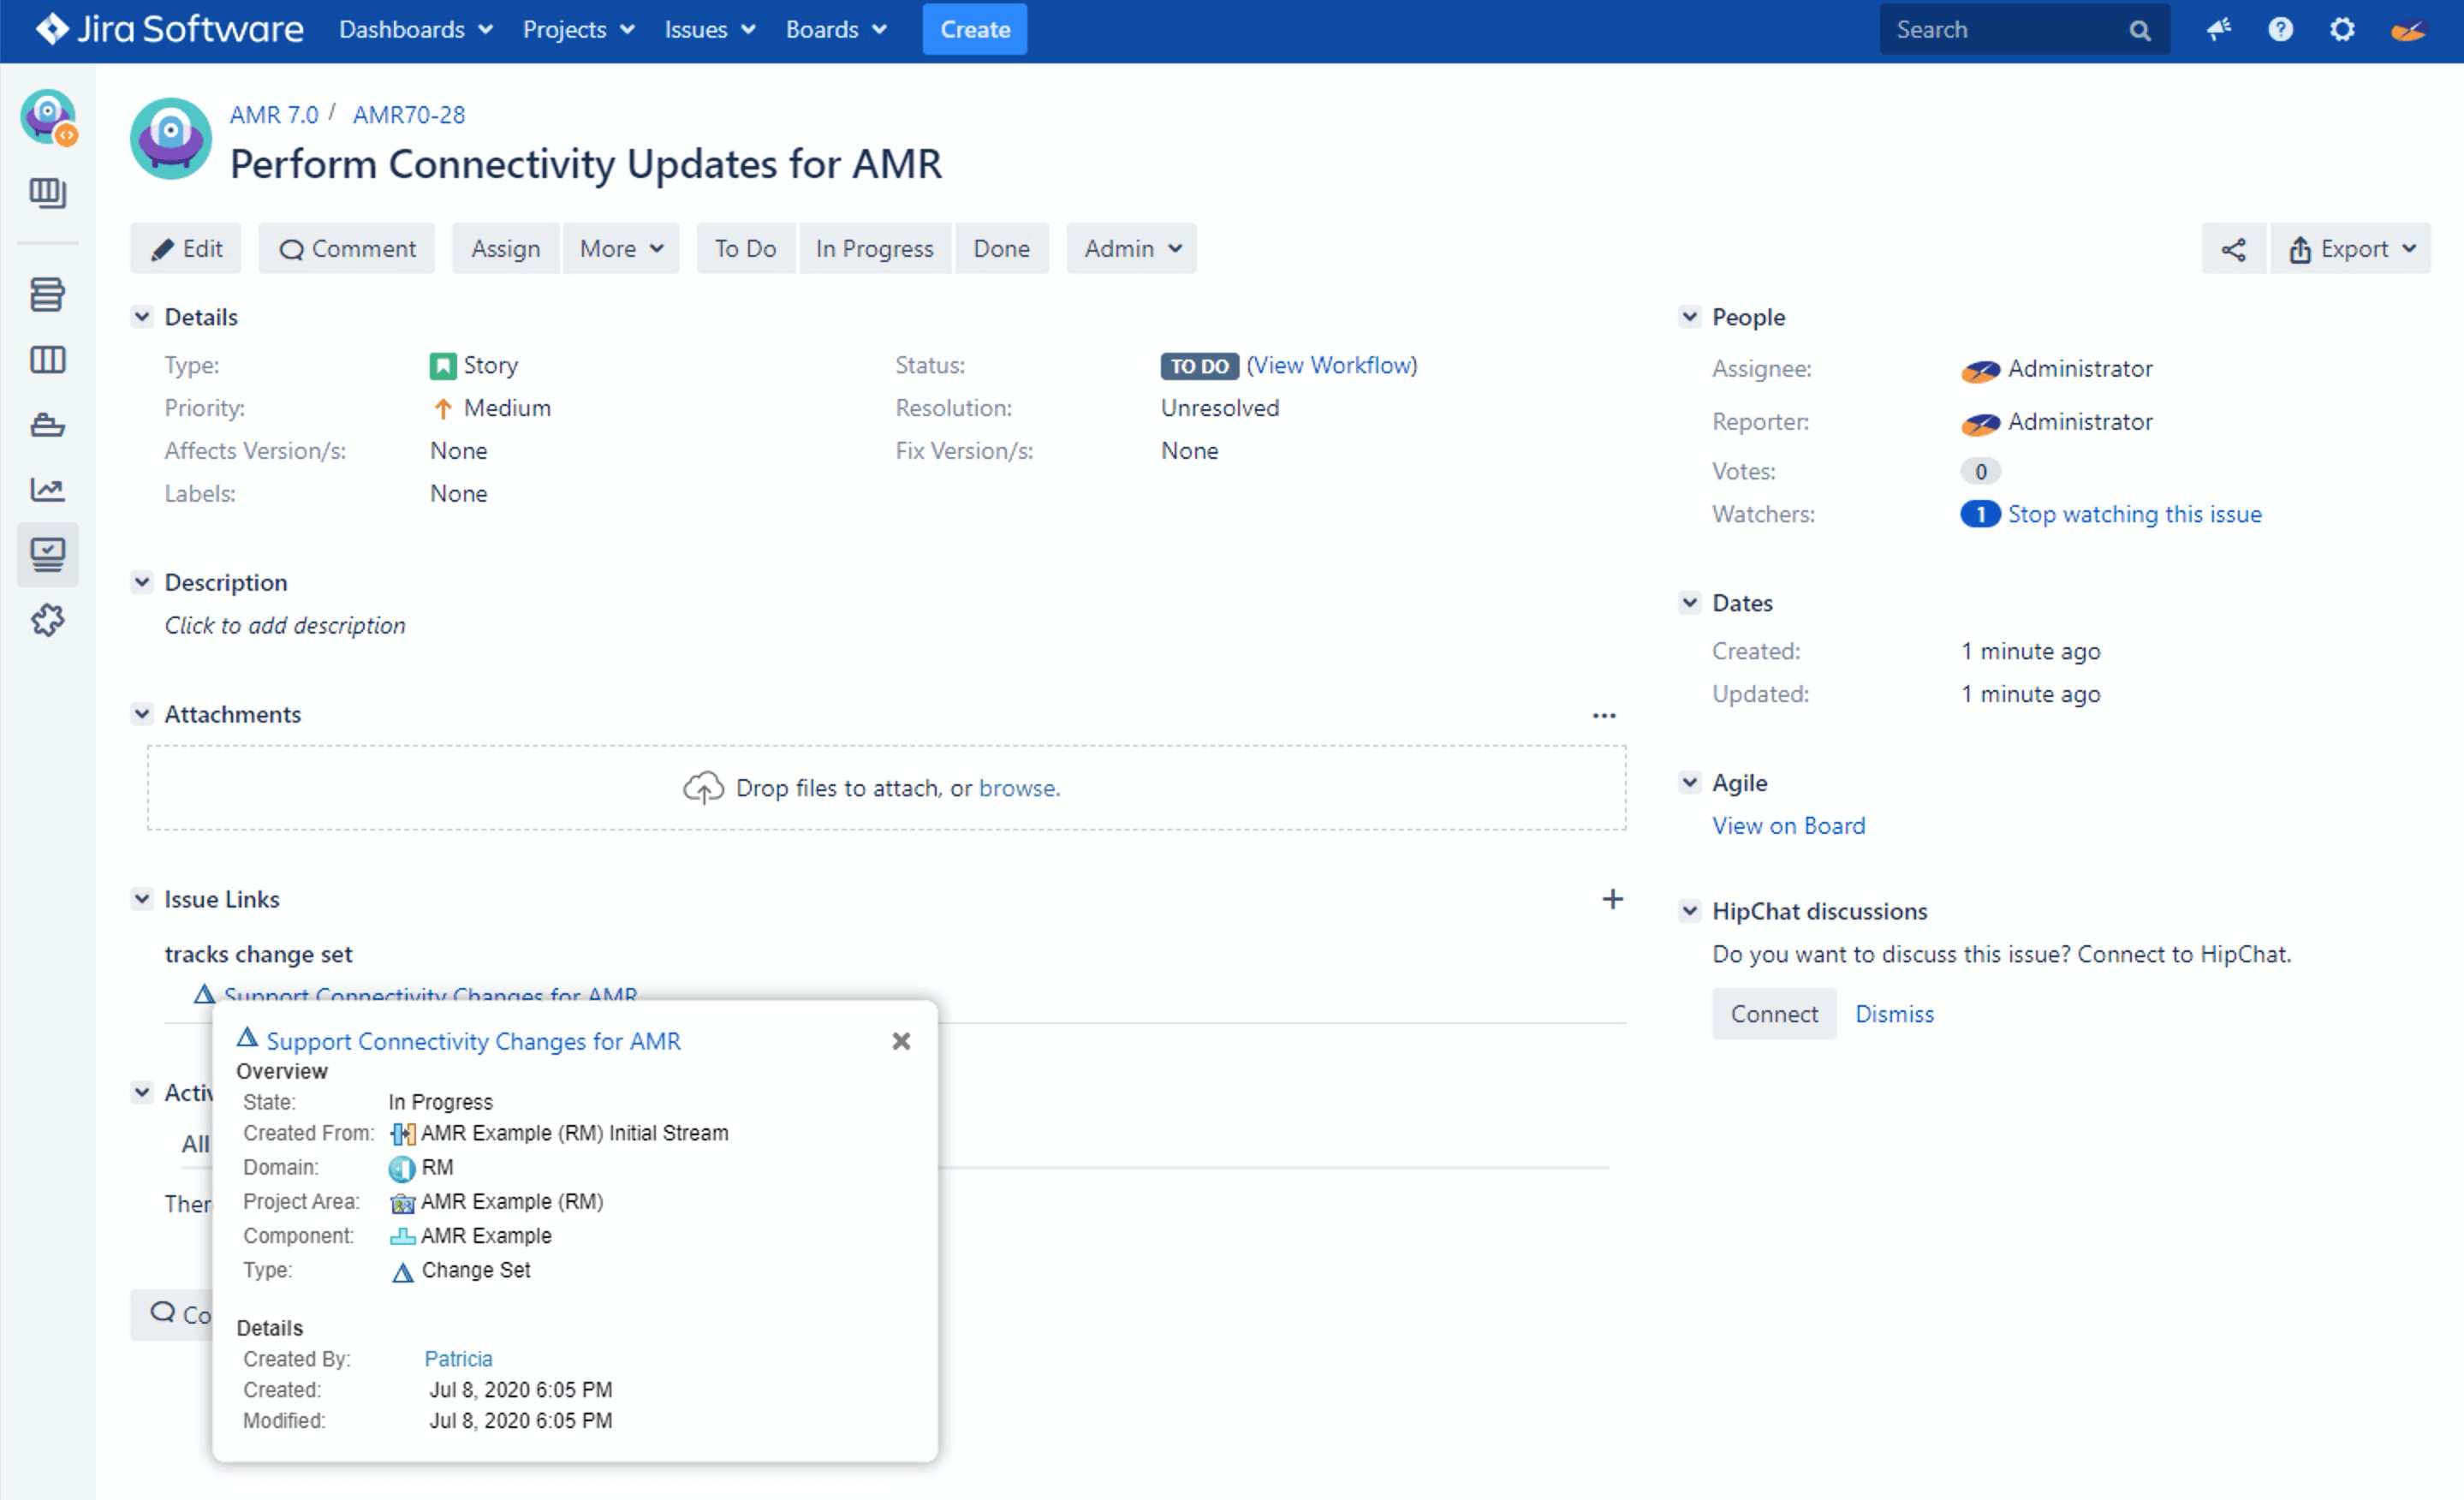 Approvals with DOORS Next Generation and Jira_OSLC Connect for Jira_SodiusWillert-3